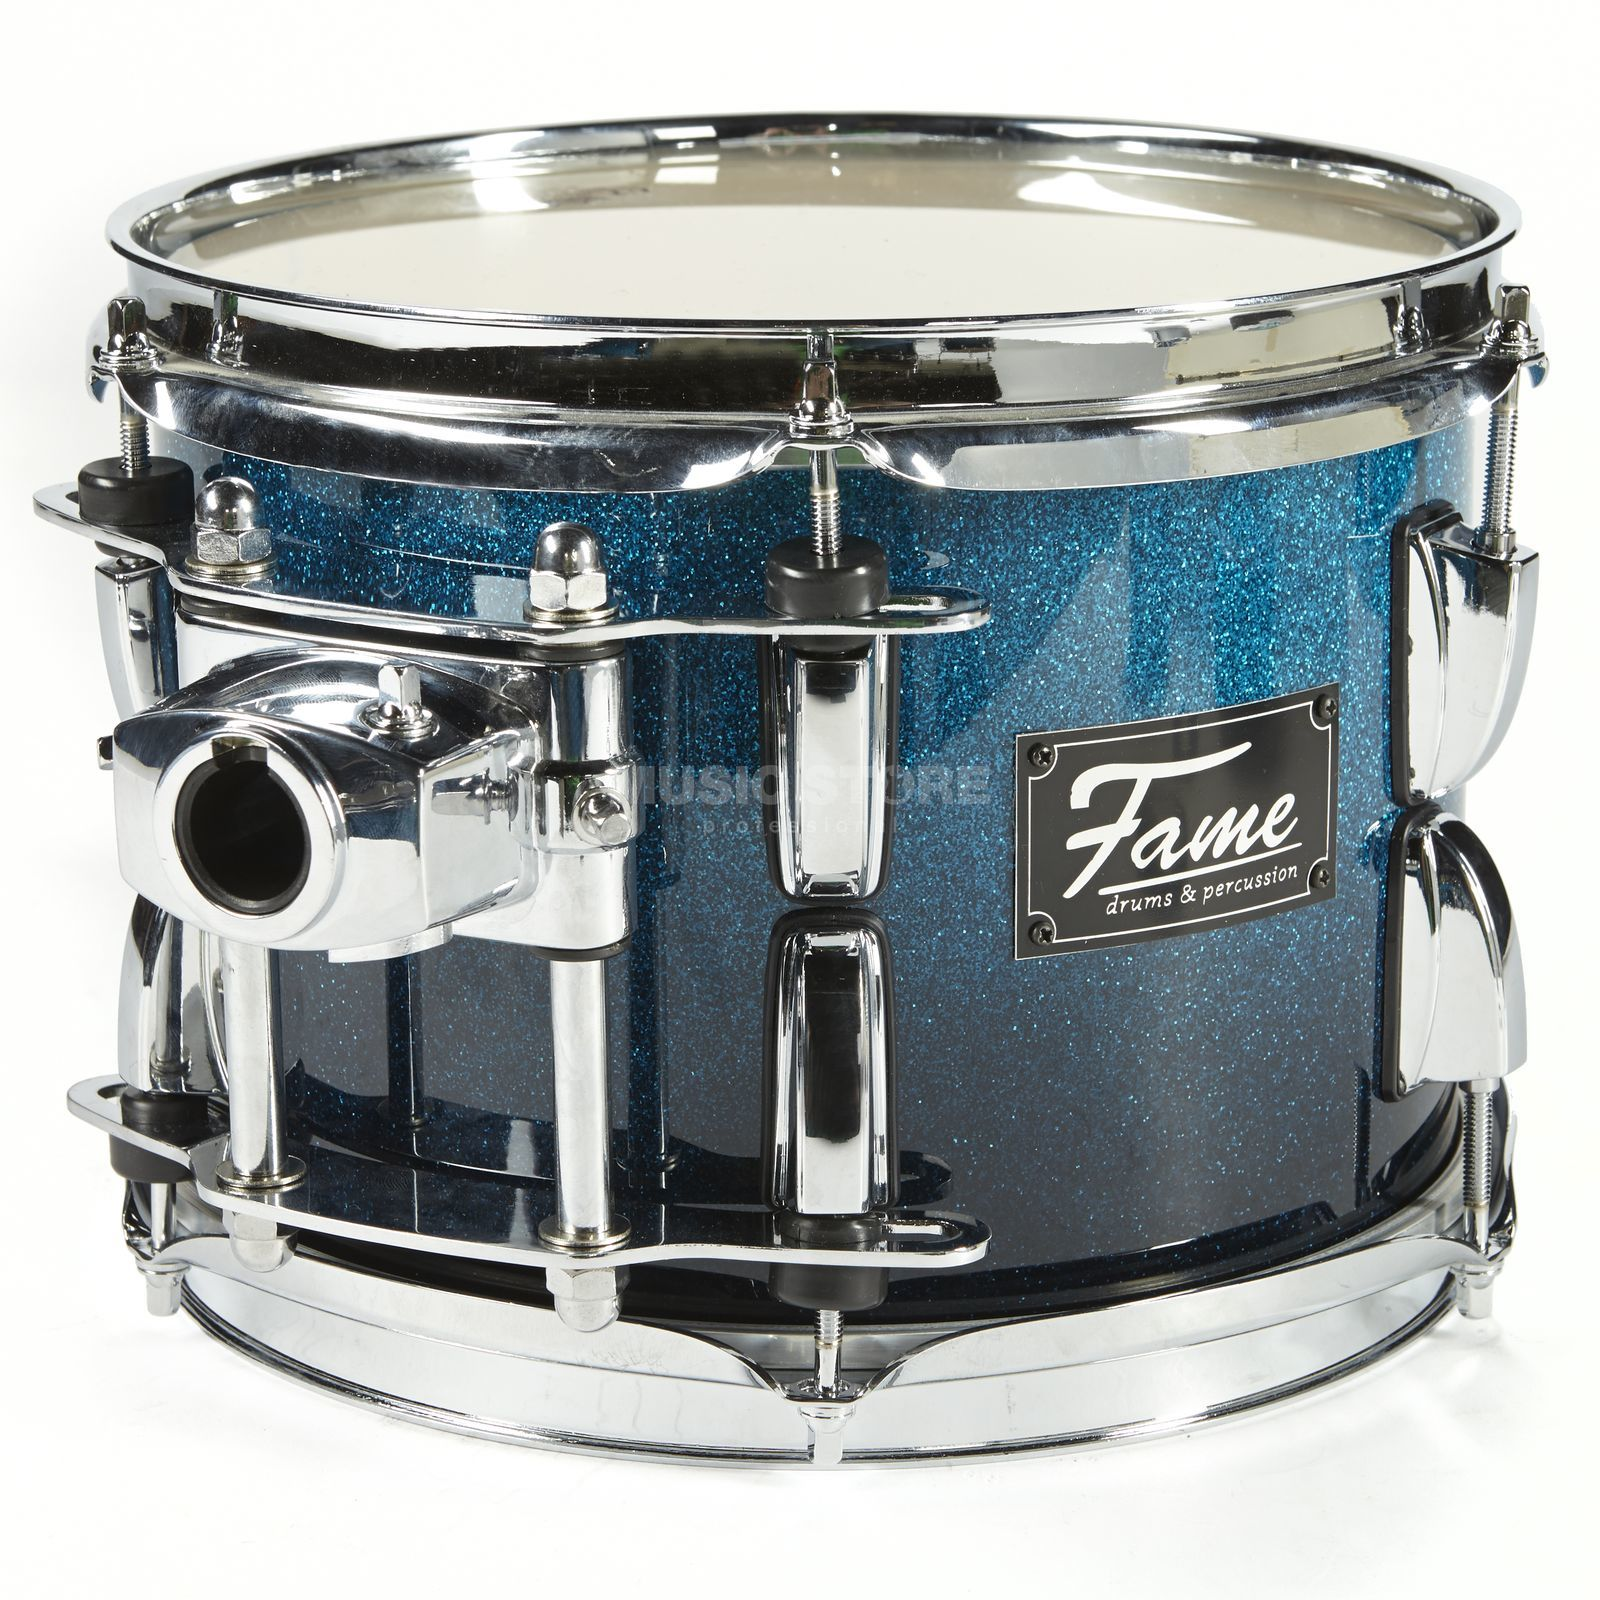 "Fame Fire Tom 10""x7"", #Blue Fade Sparkle Produktbild"